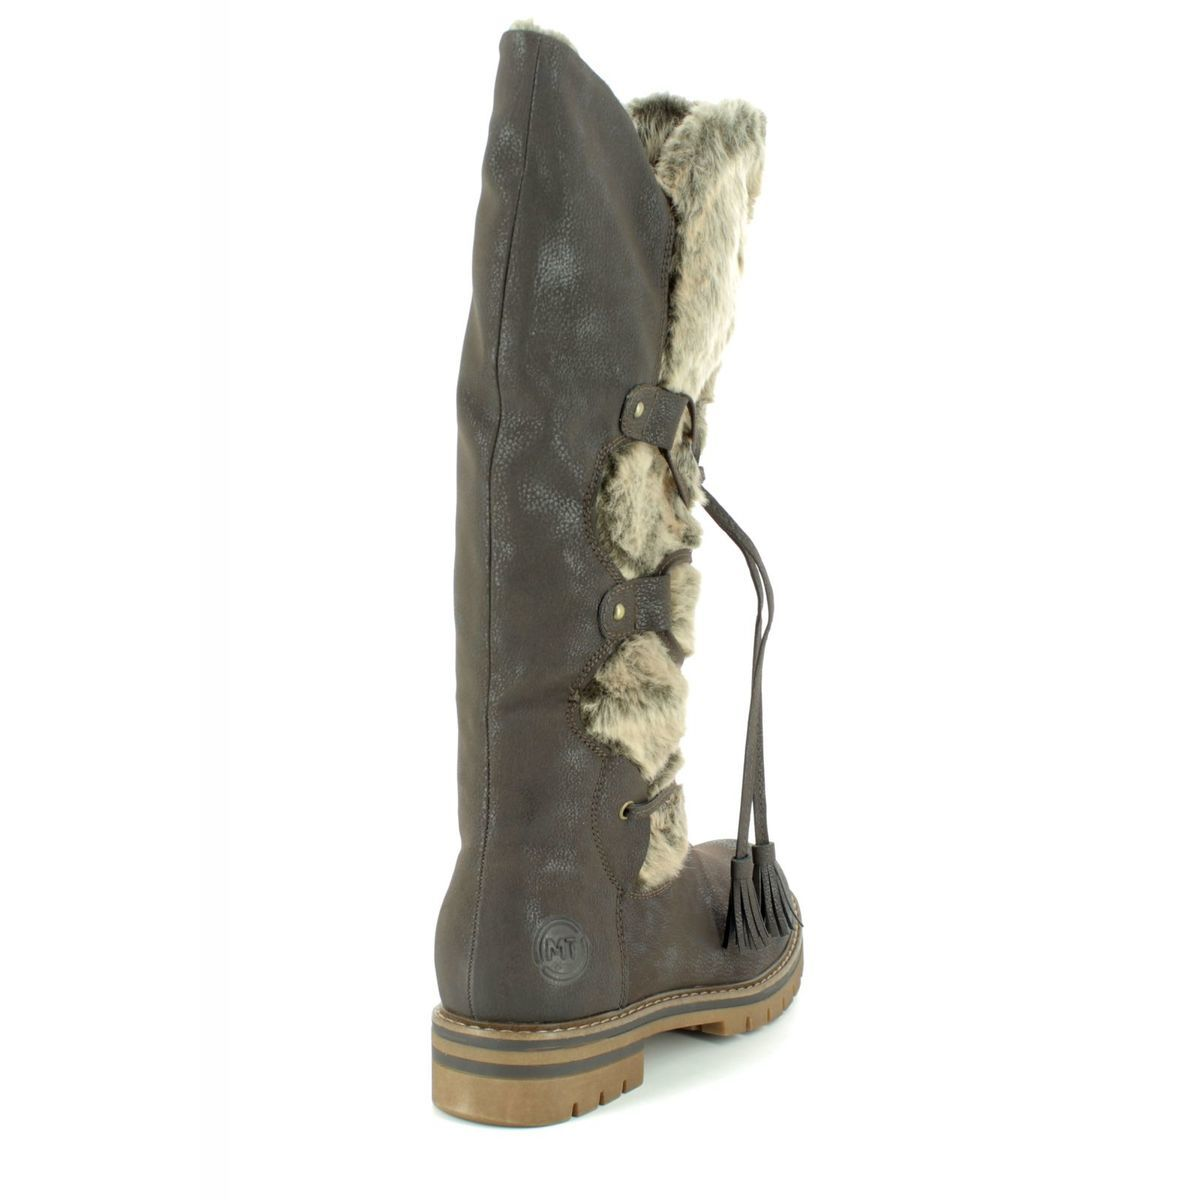 9c0db828b75 Marco Tozzi Knee-high Boots - Brown - 26635 21 325 GRANDE FURLONG